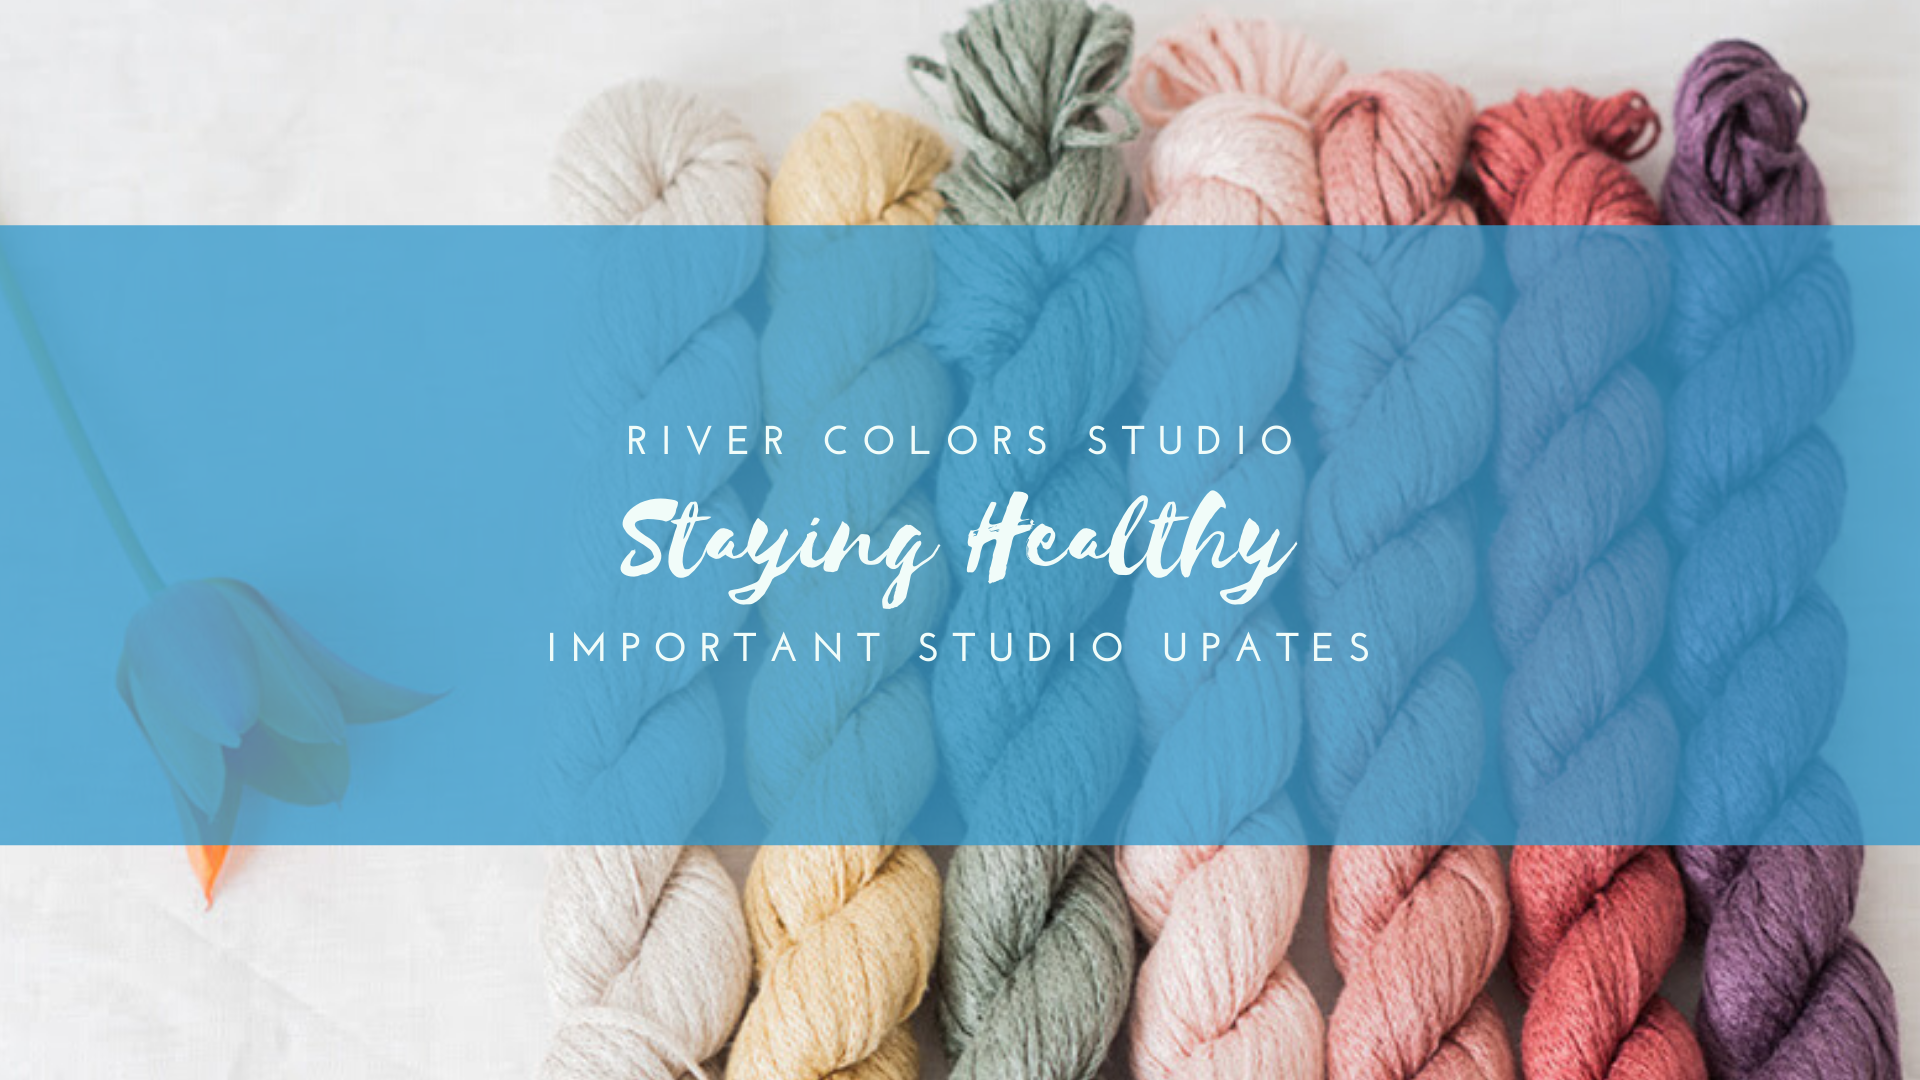 Staying healthy at River Colors Studio